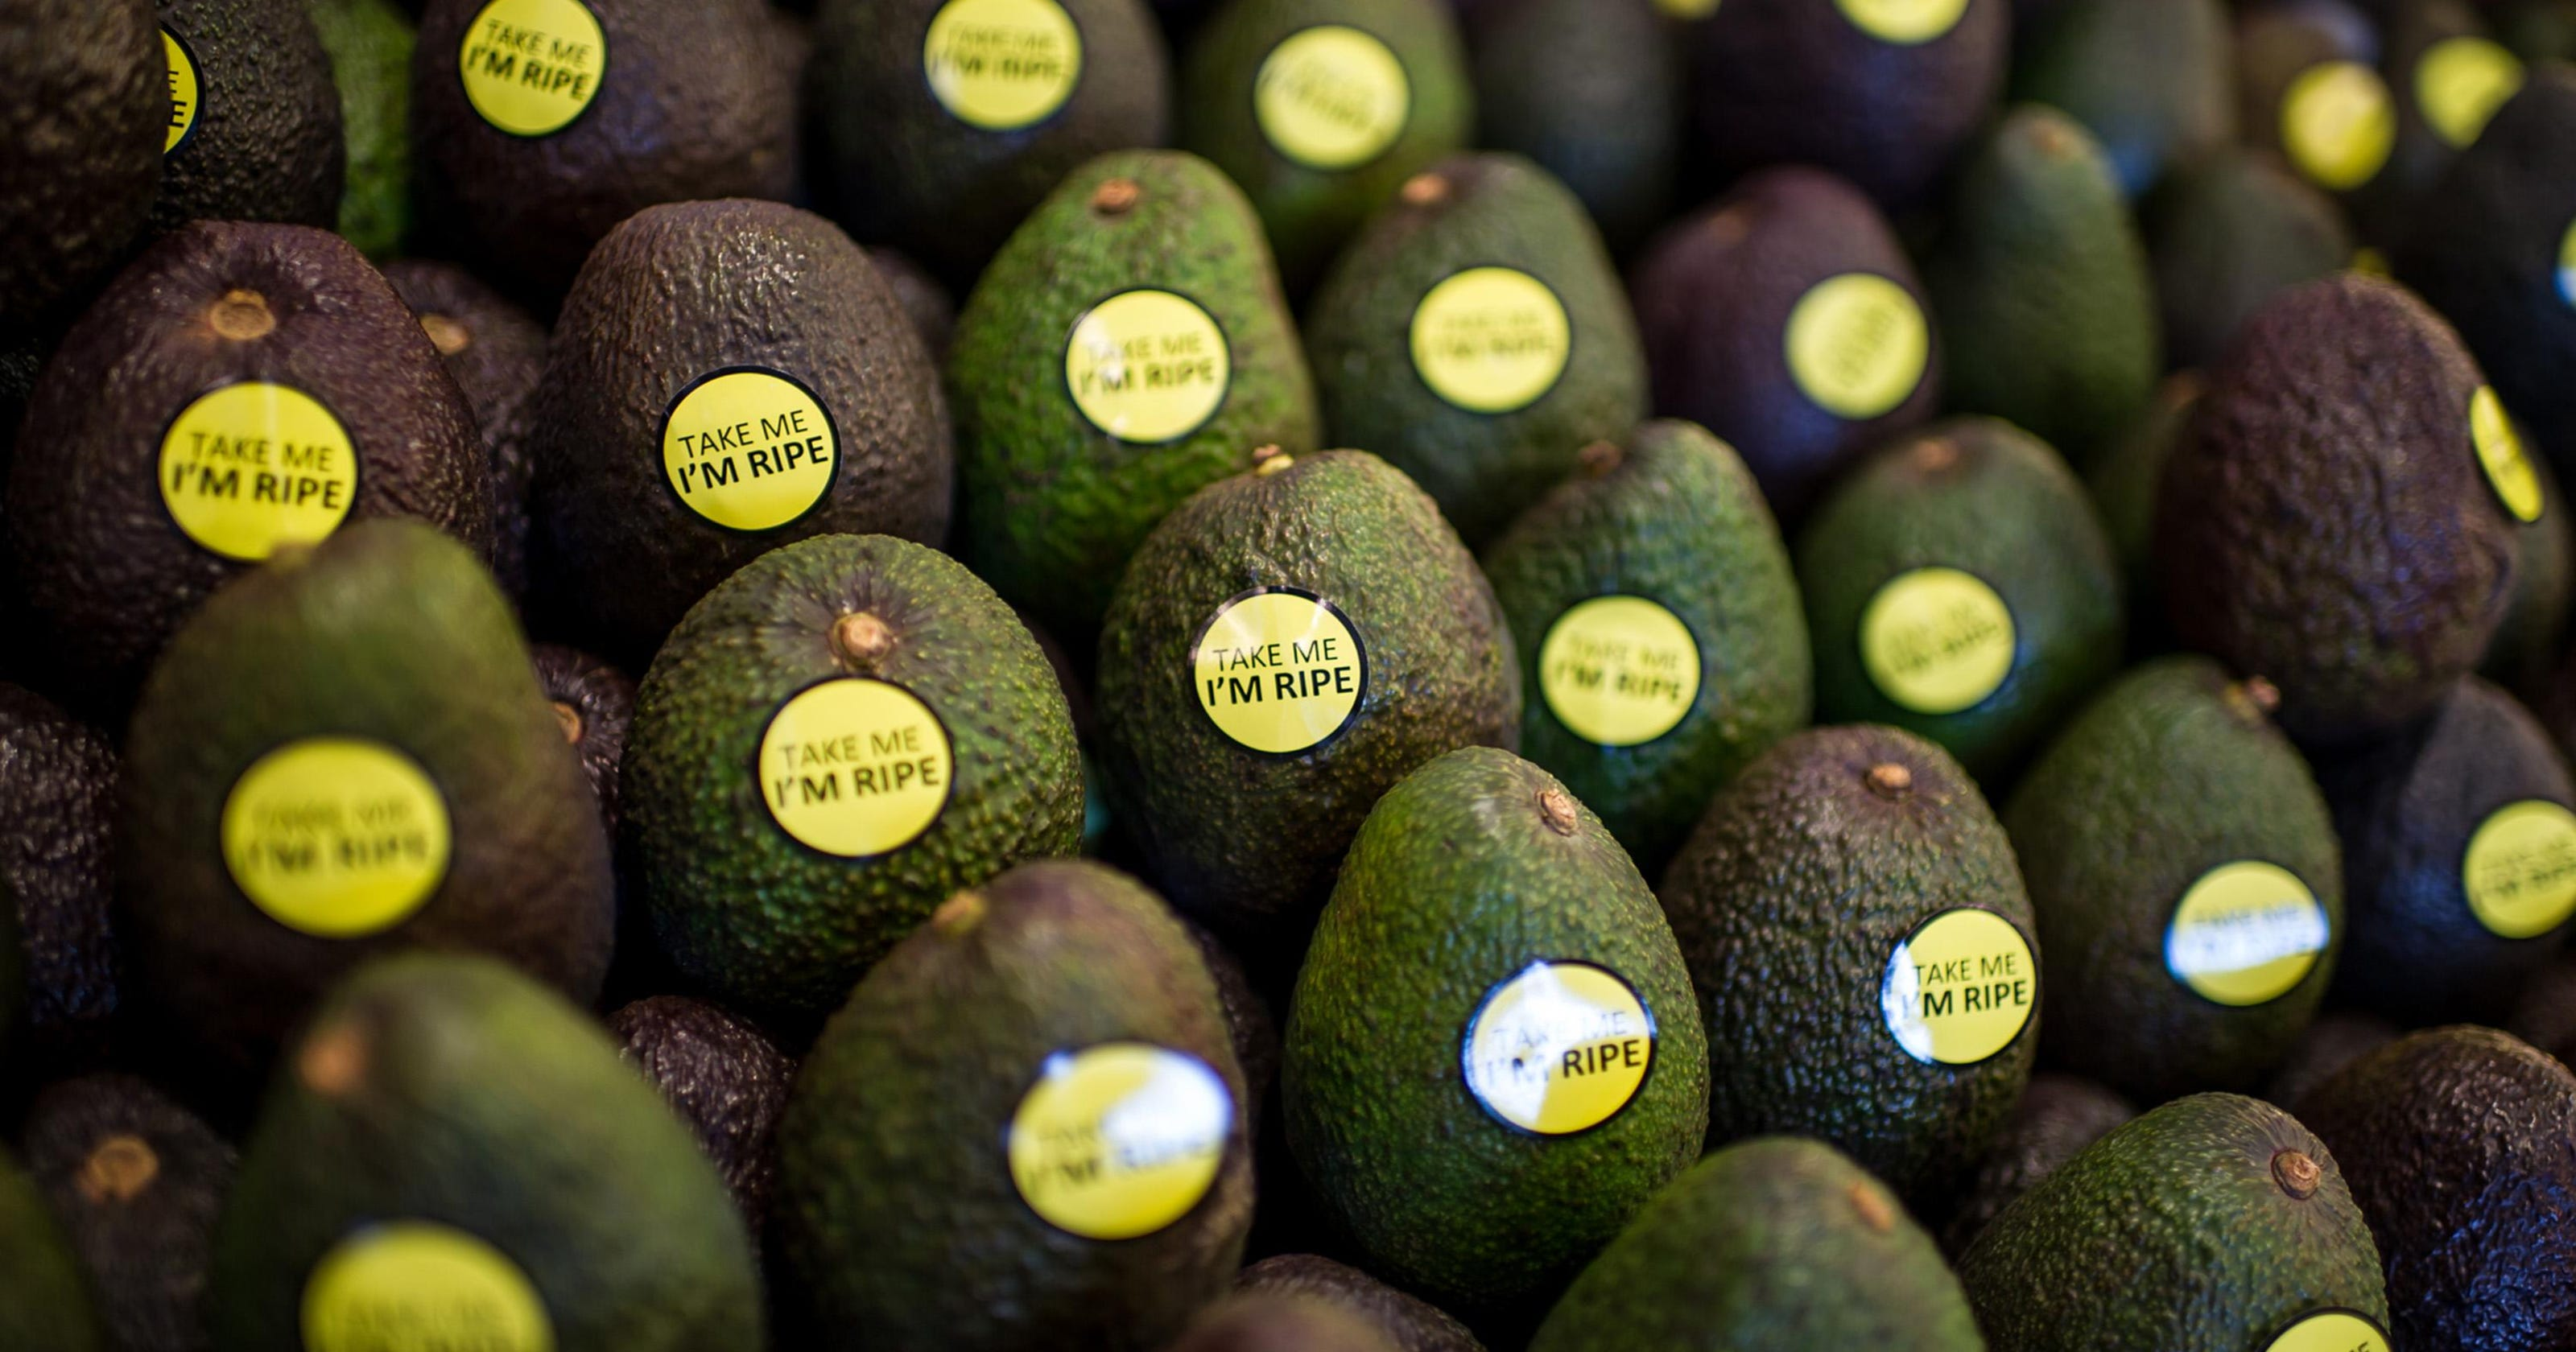 Avocado prices are the pits